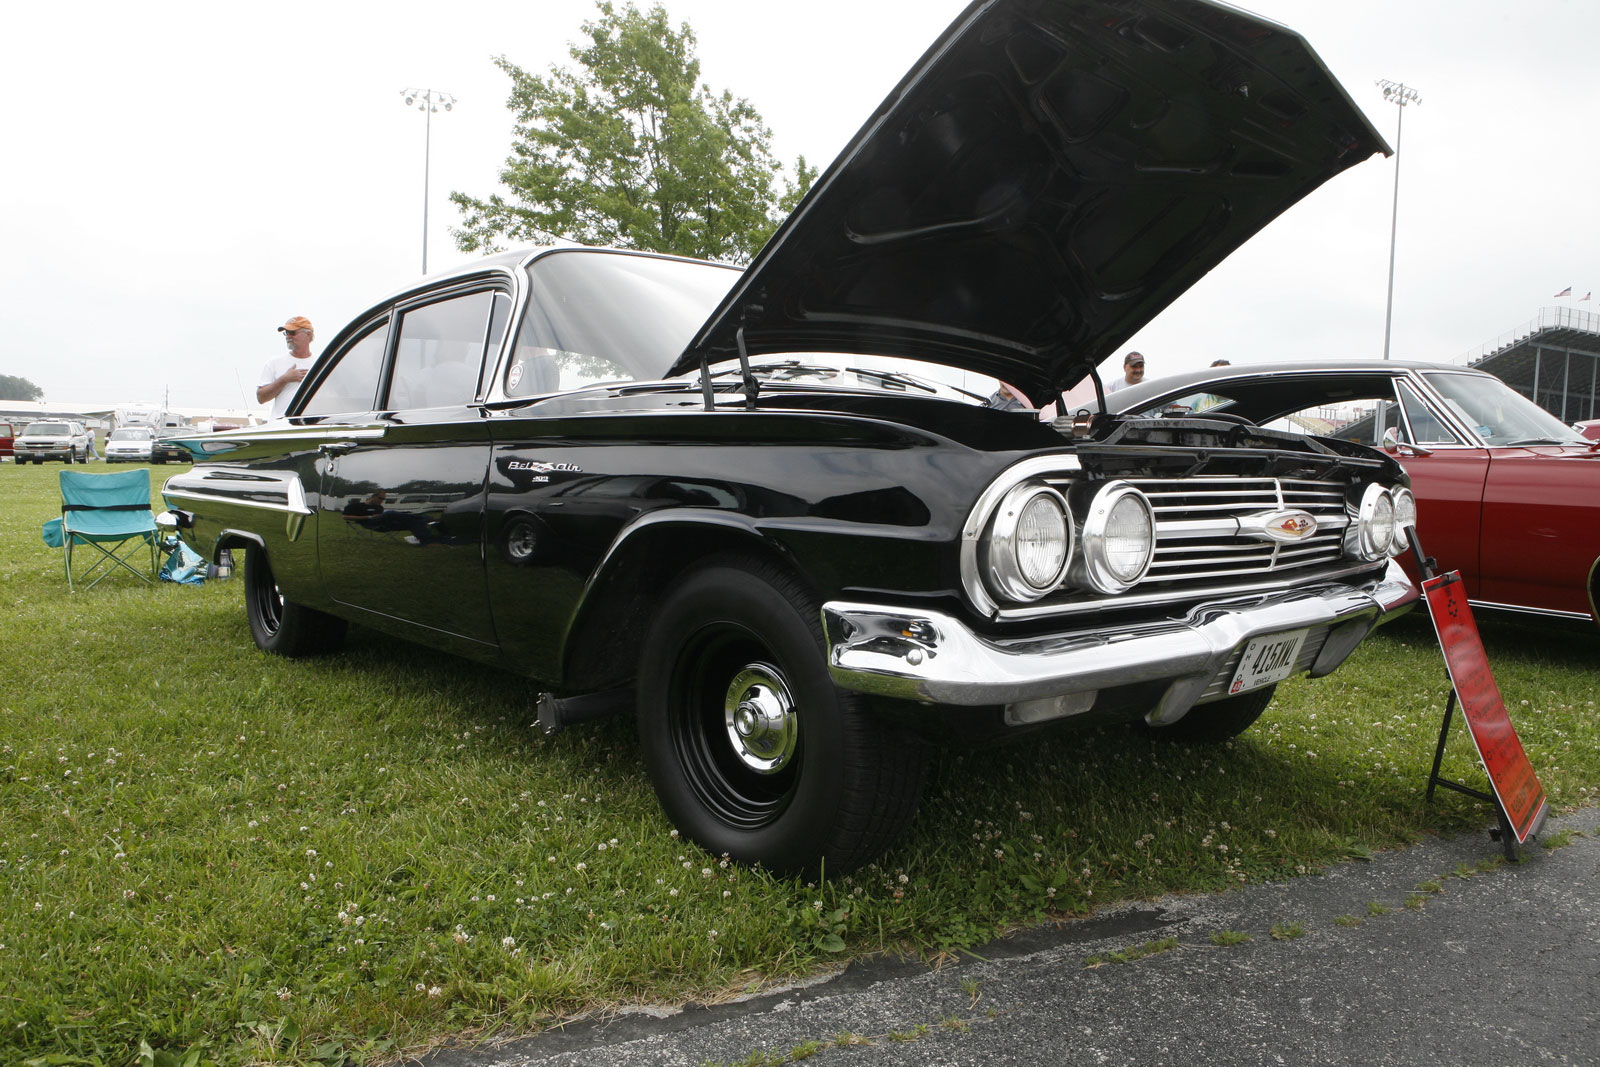 Sucp_1006w_20 Super_chevy_show_2010 Norwalk_ohio